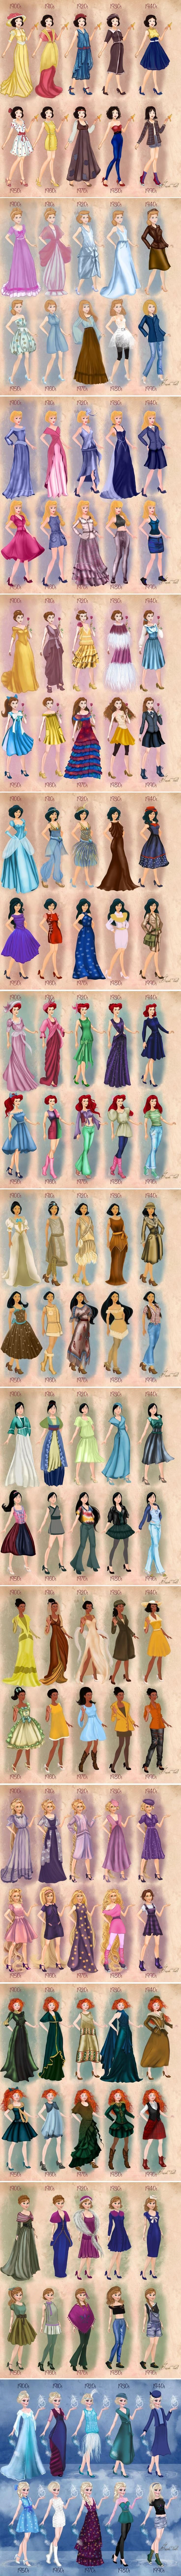 Disney Princesses in 20th Century Fashion. I love this so much.: